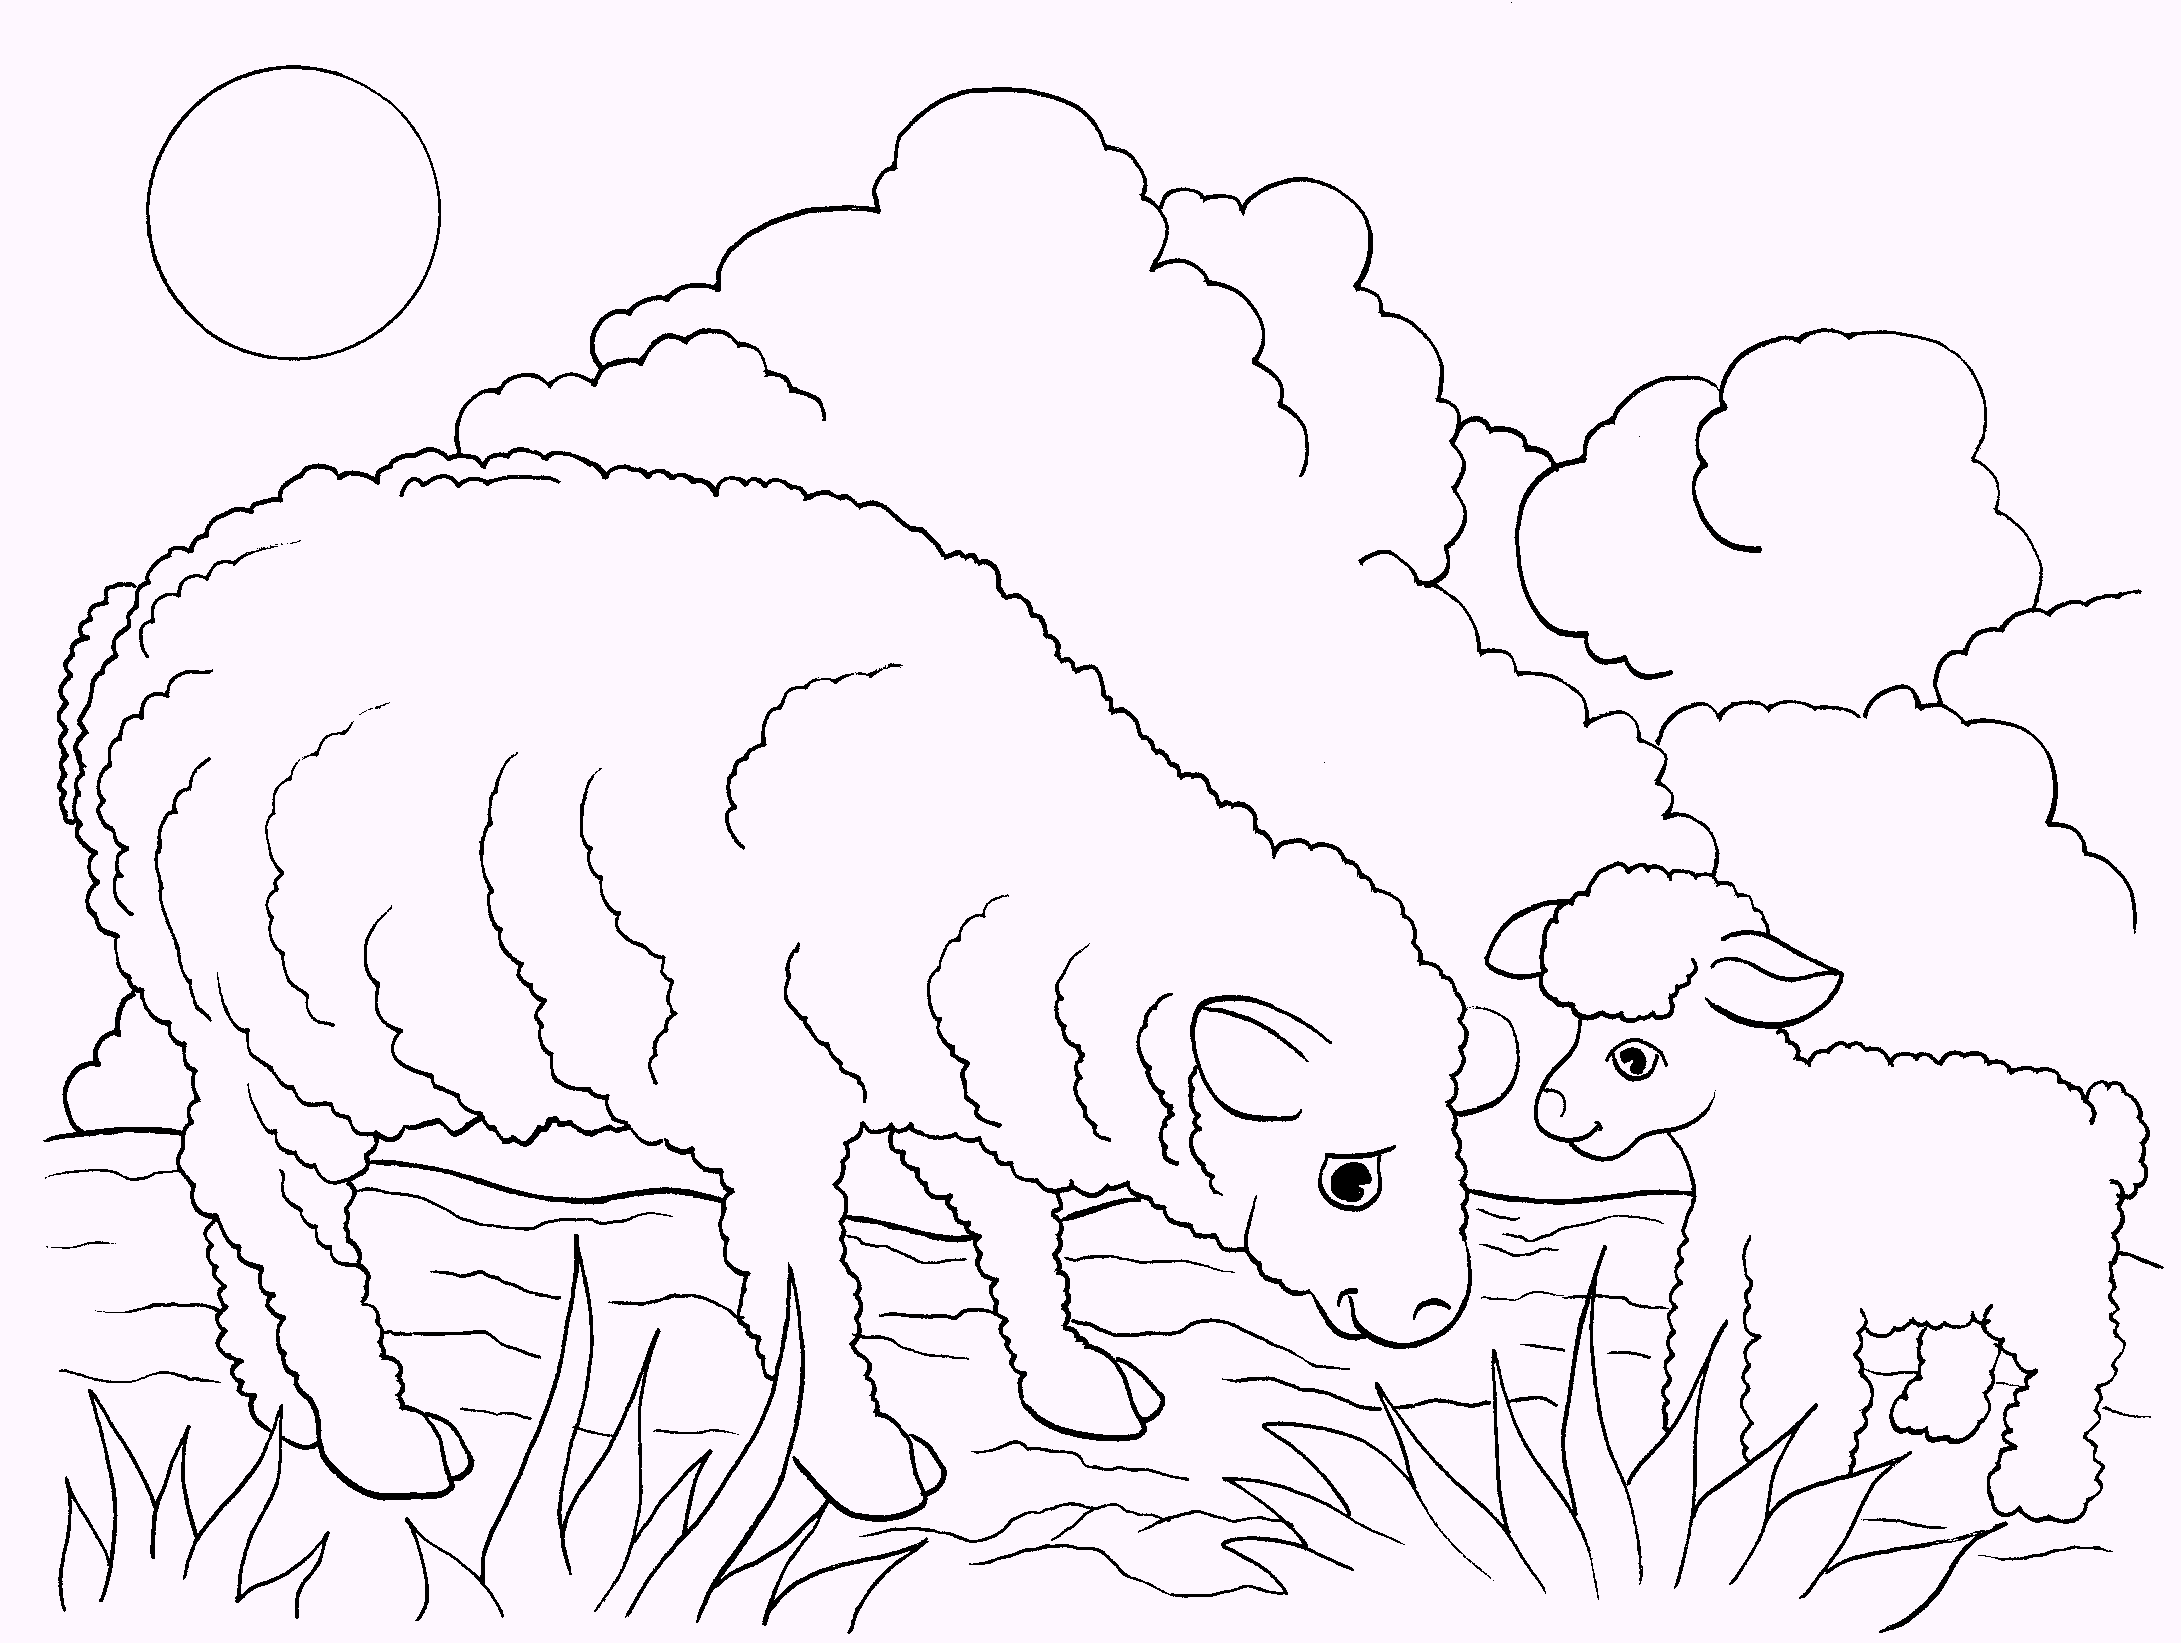 sheep-coloring-pages